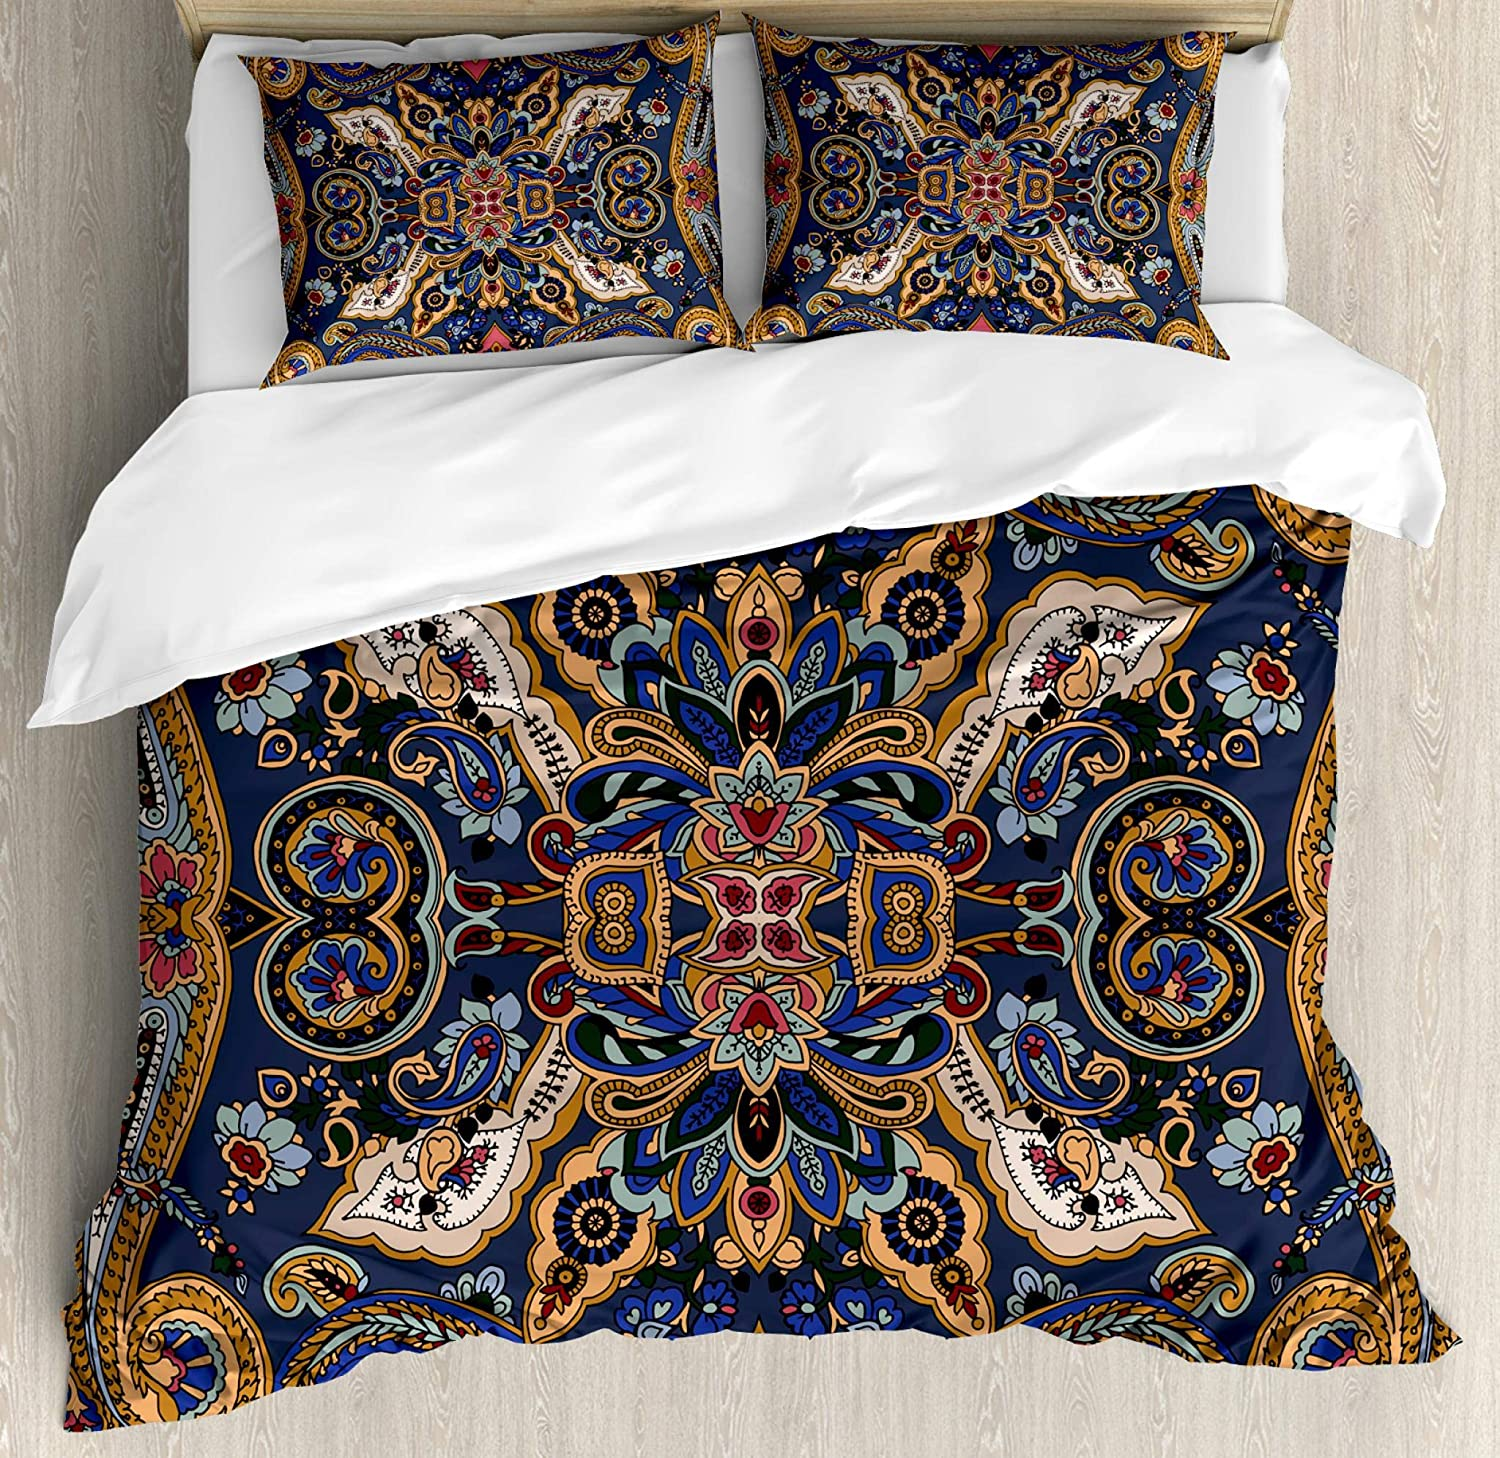 Ambesonne Paisley Duvet Cover Set, Historical Moroccan Florets with Slavic Effects Heritage Design, Decorative 3 Piece Bedding Set with 2 Pillow Shams, Queen Size, Royal Blue and Sand Brown